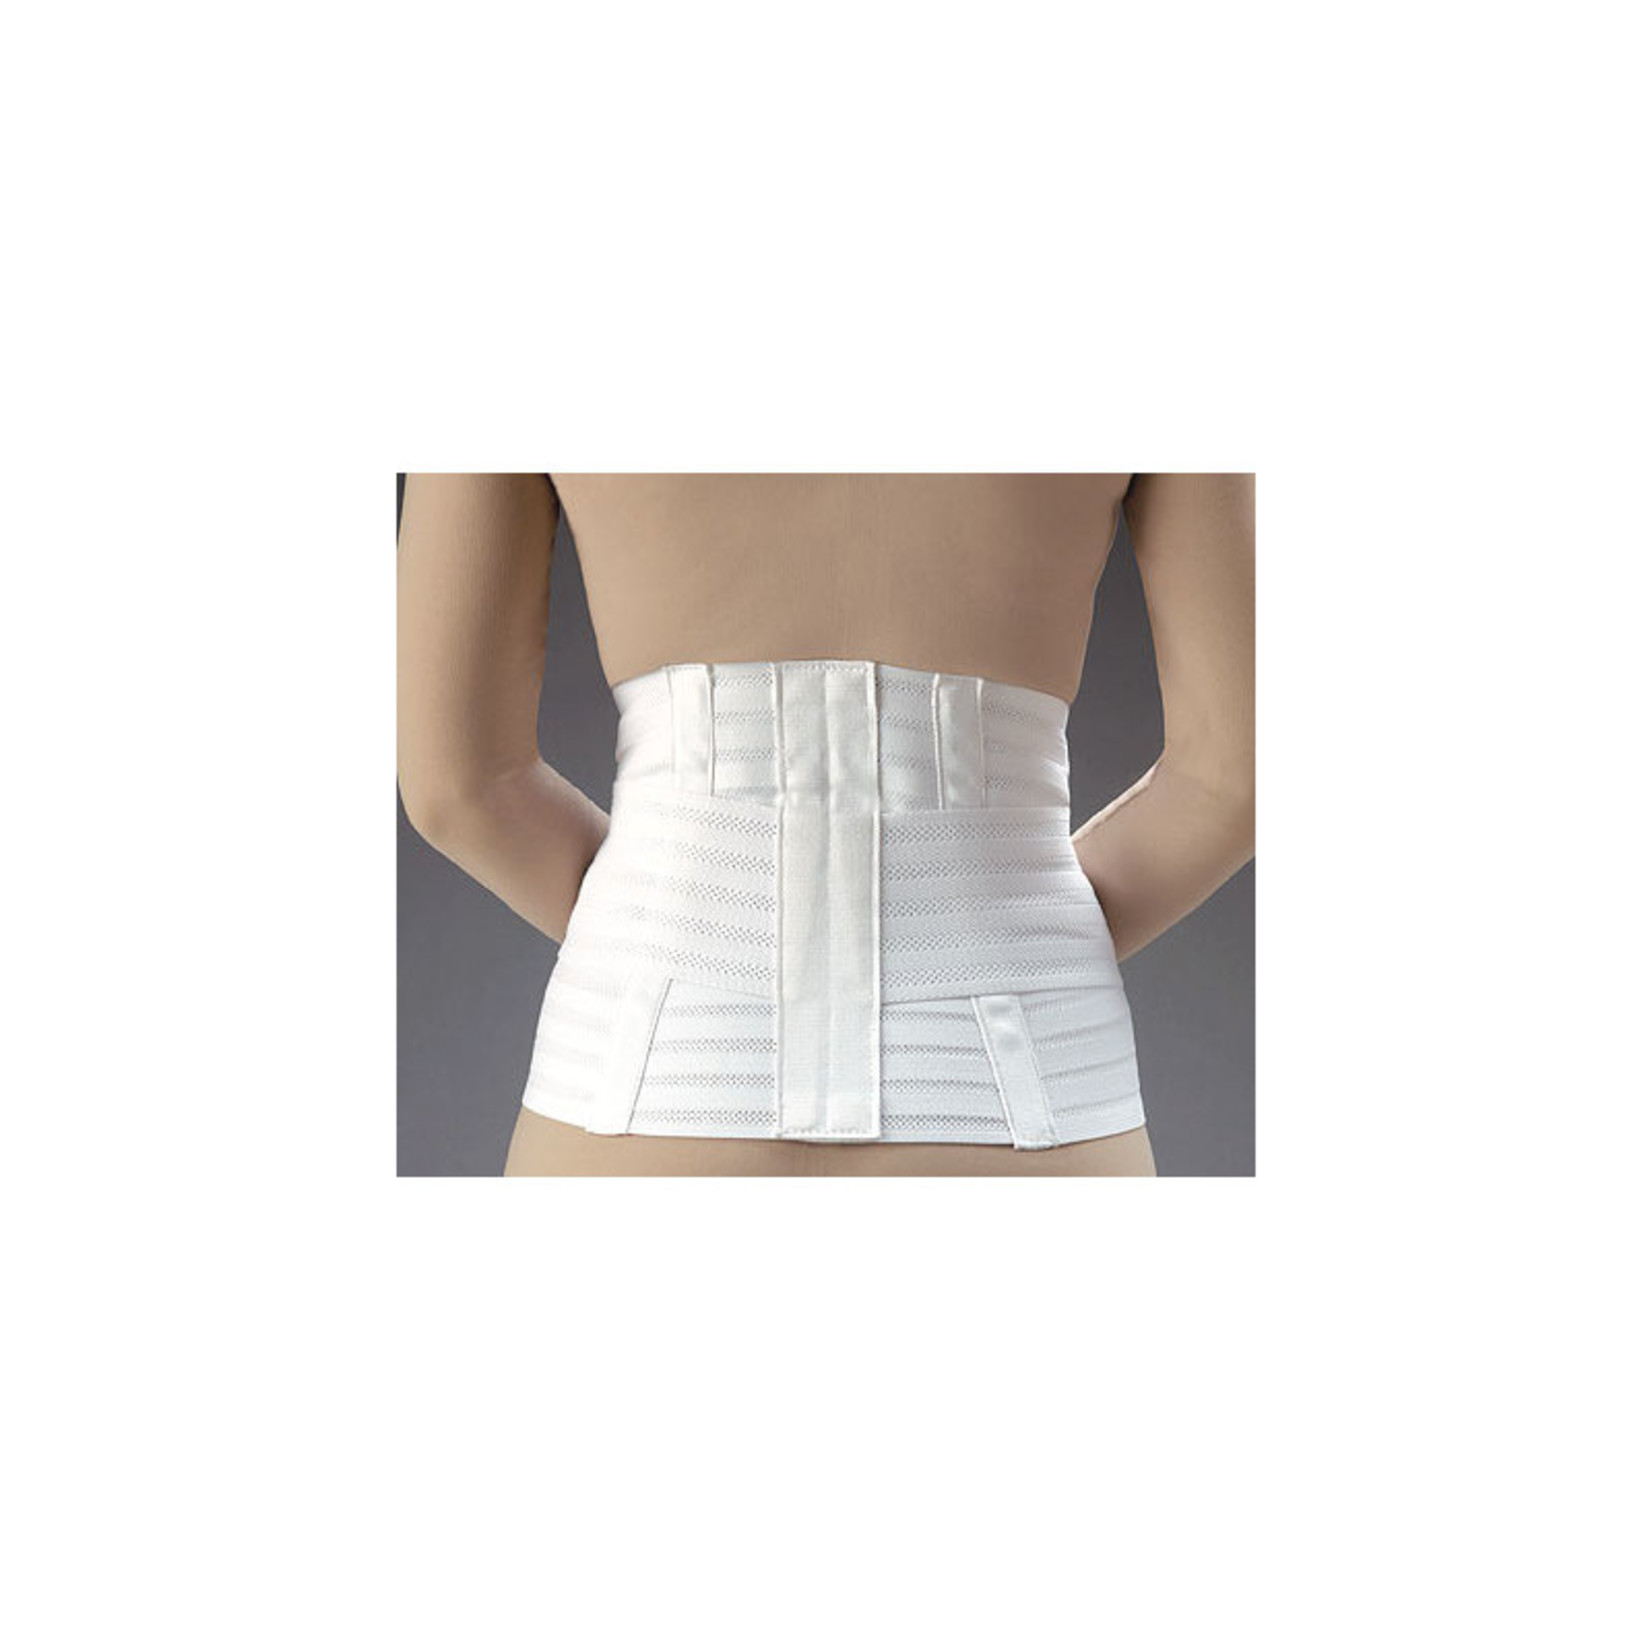 FLA Orthopedics LUMBAR SUPPORT VENTILATED W/BELT WHITE